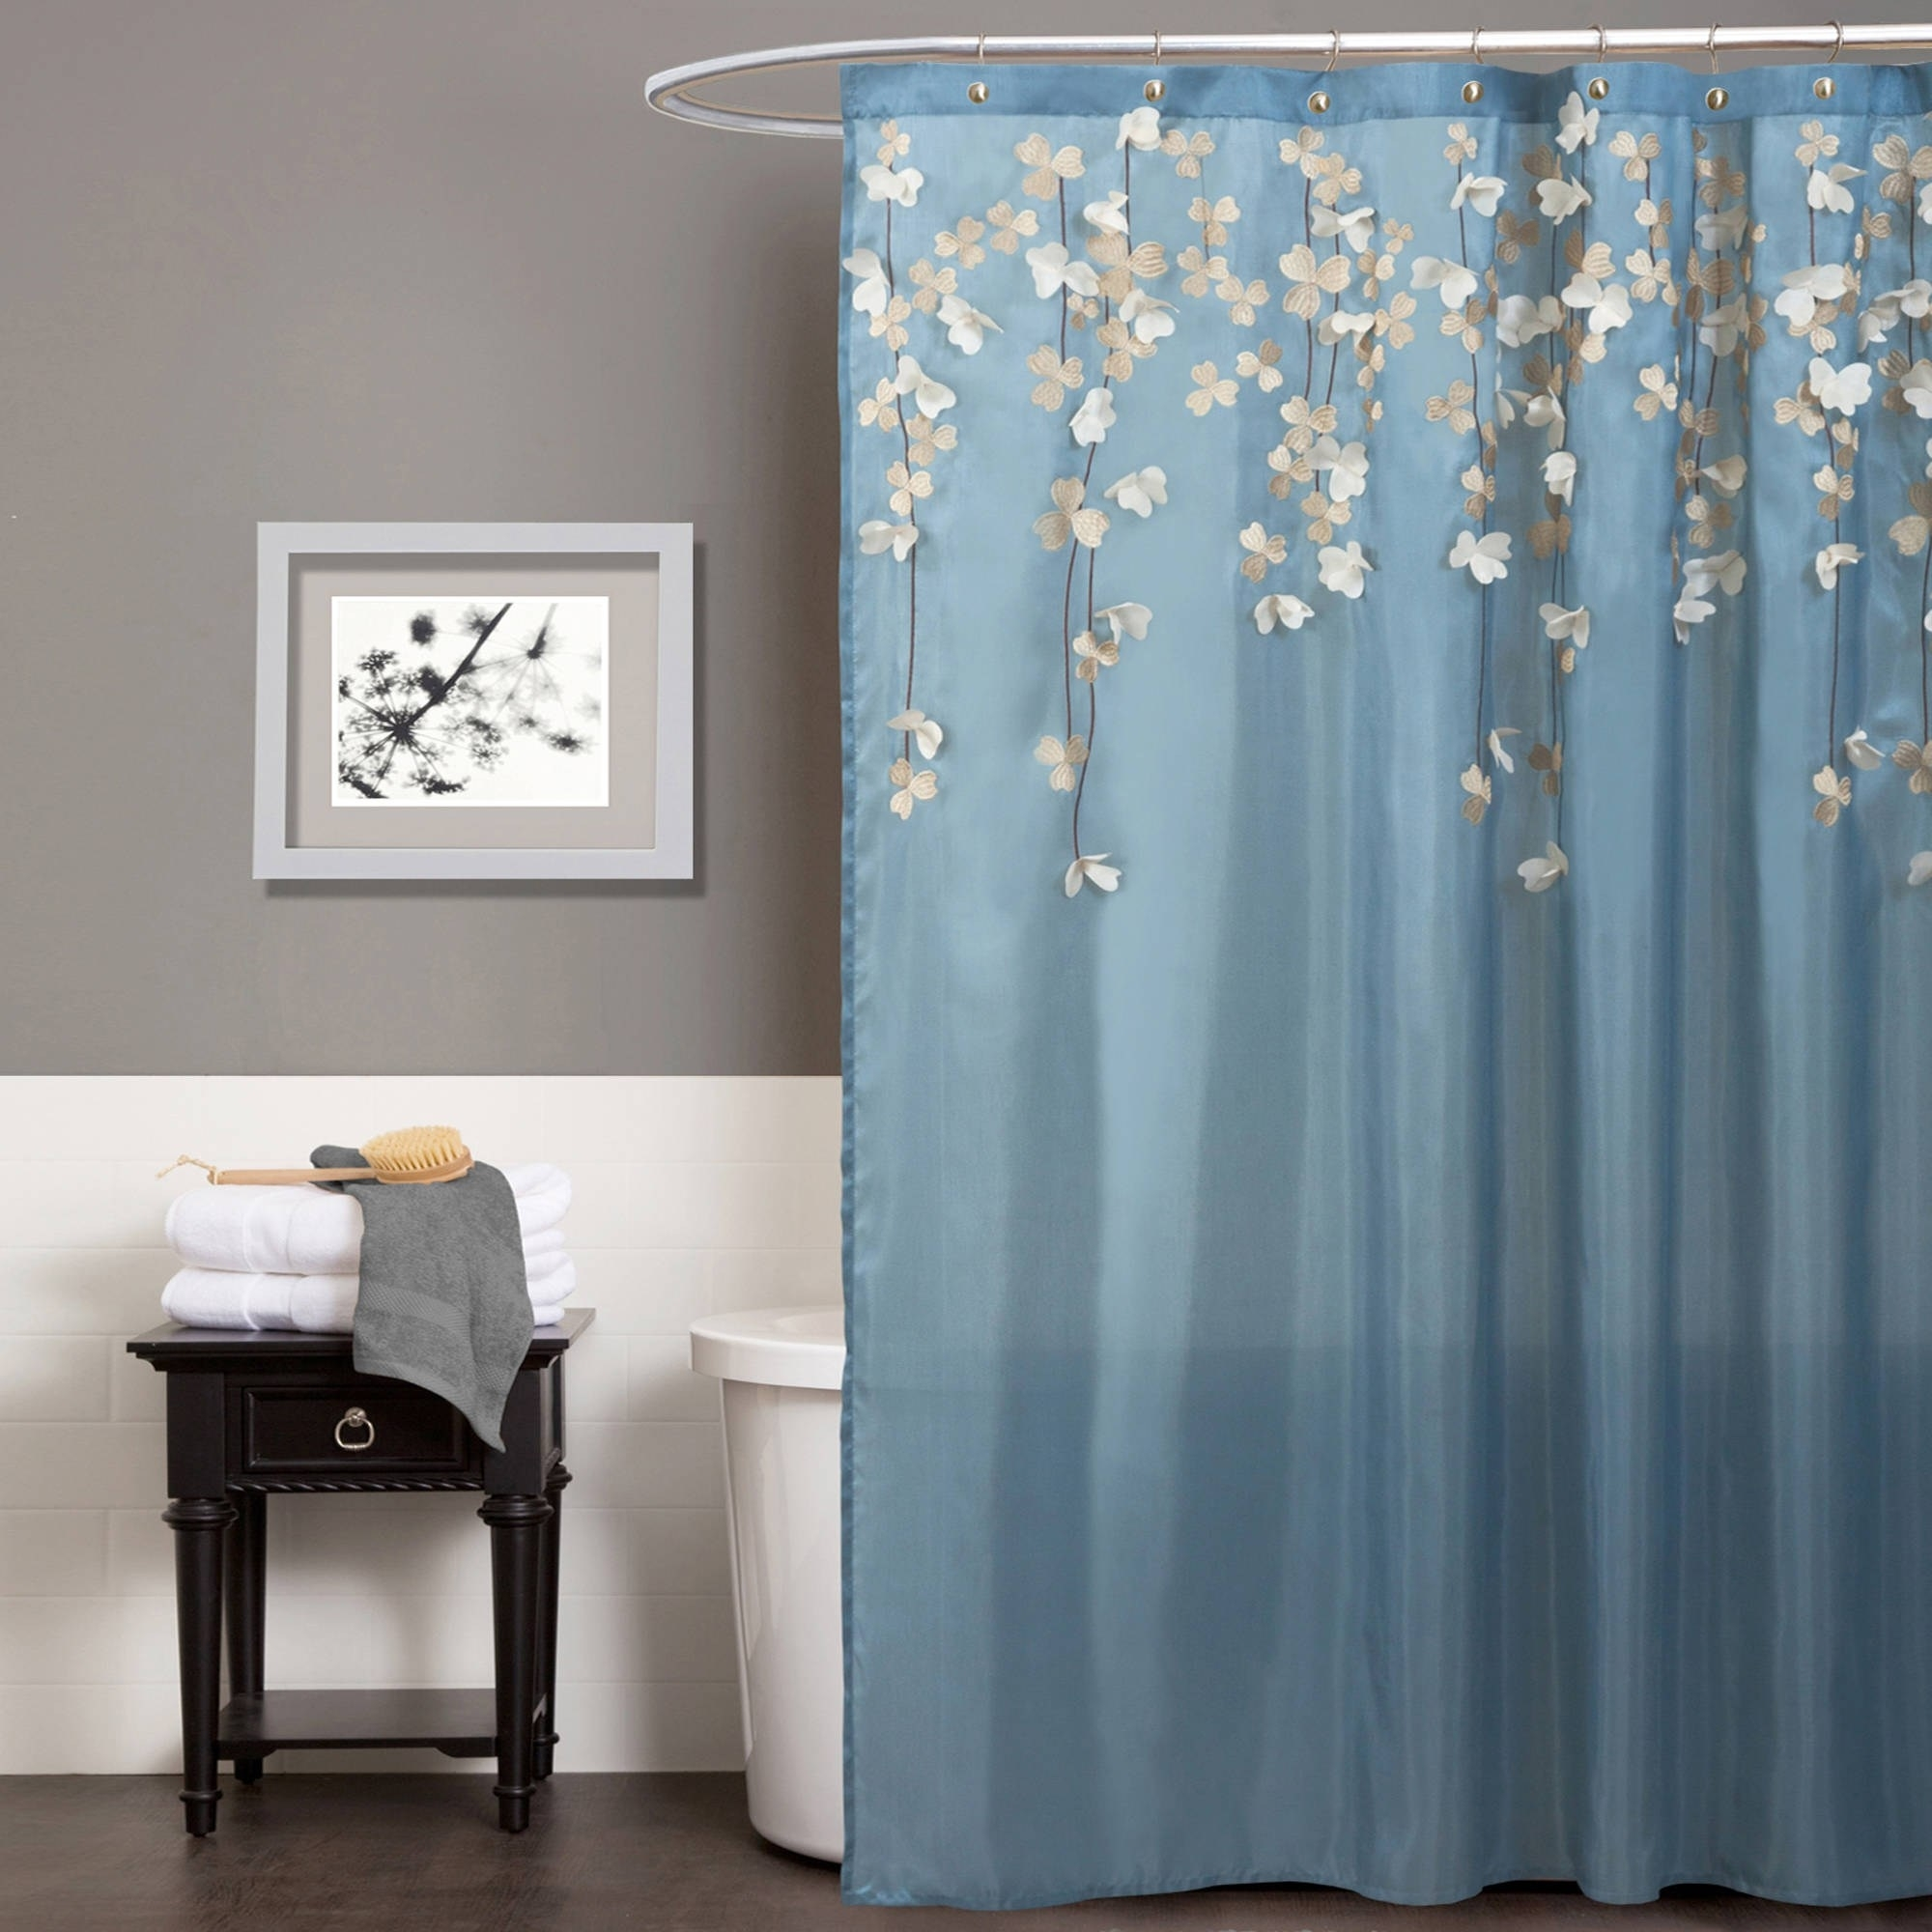 Curtain Peach Shower Curtain Etsy Within Peach Colored Shower With Regard To Peach Colored Curtains (Image 11 of 25)